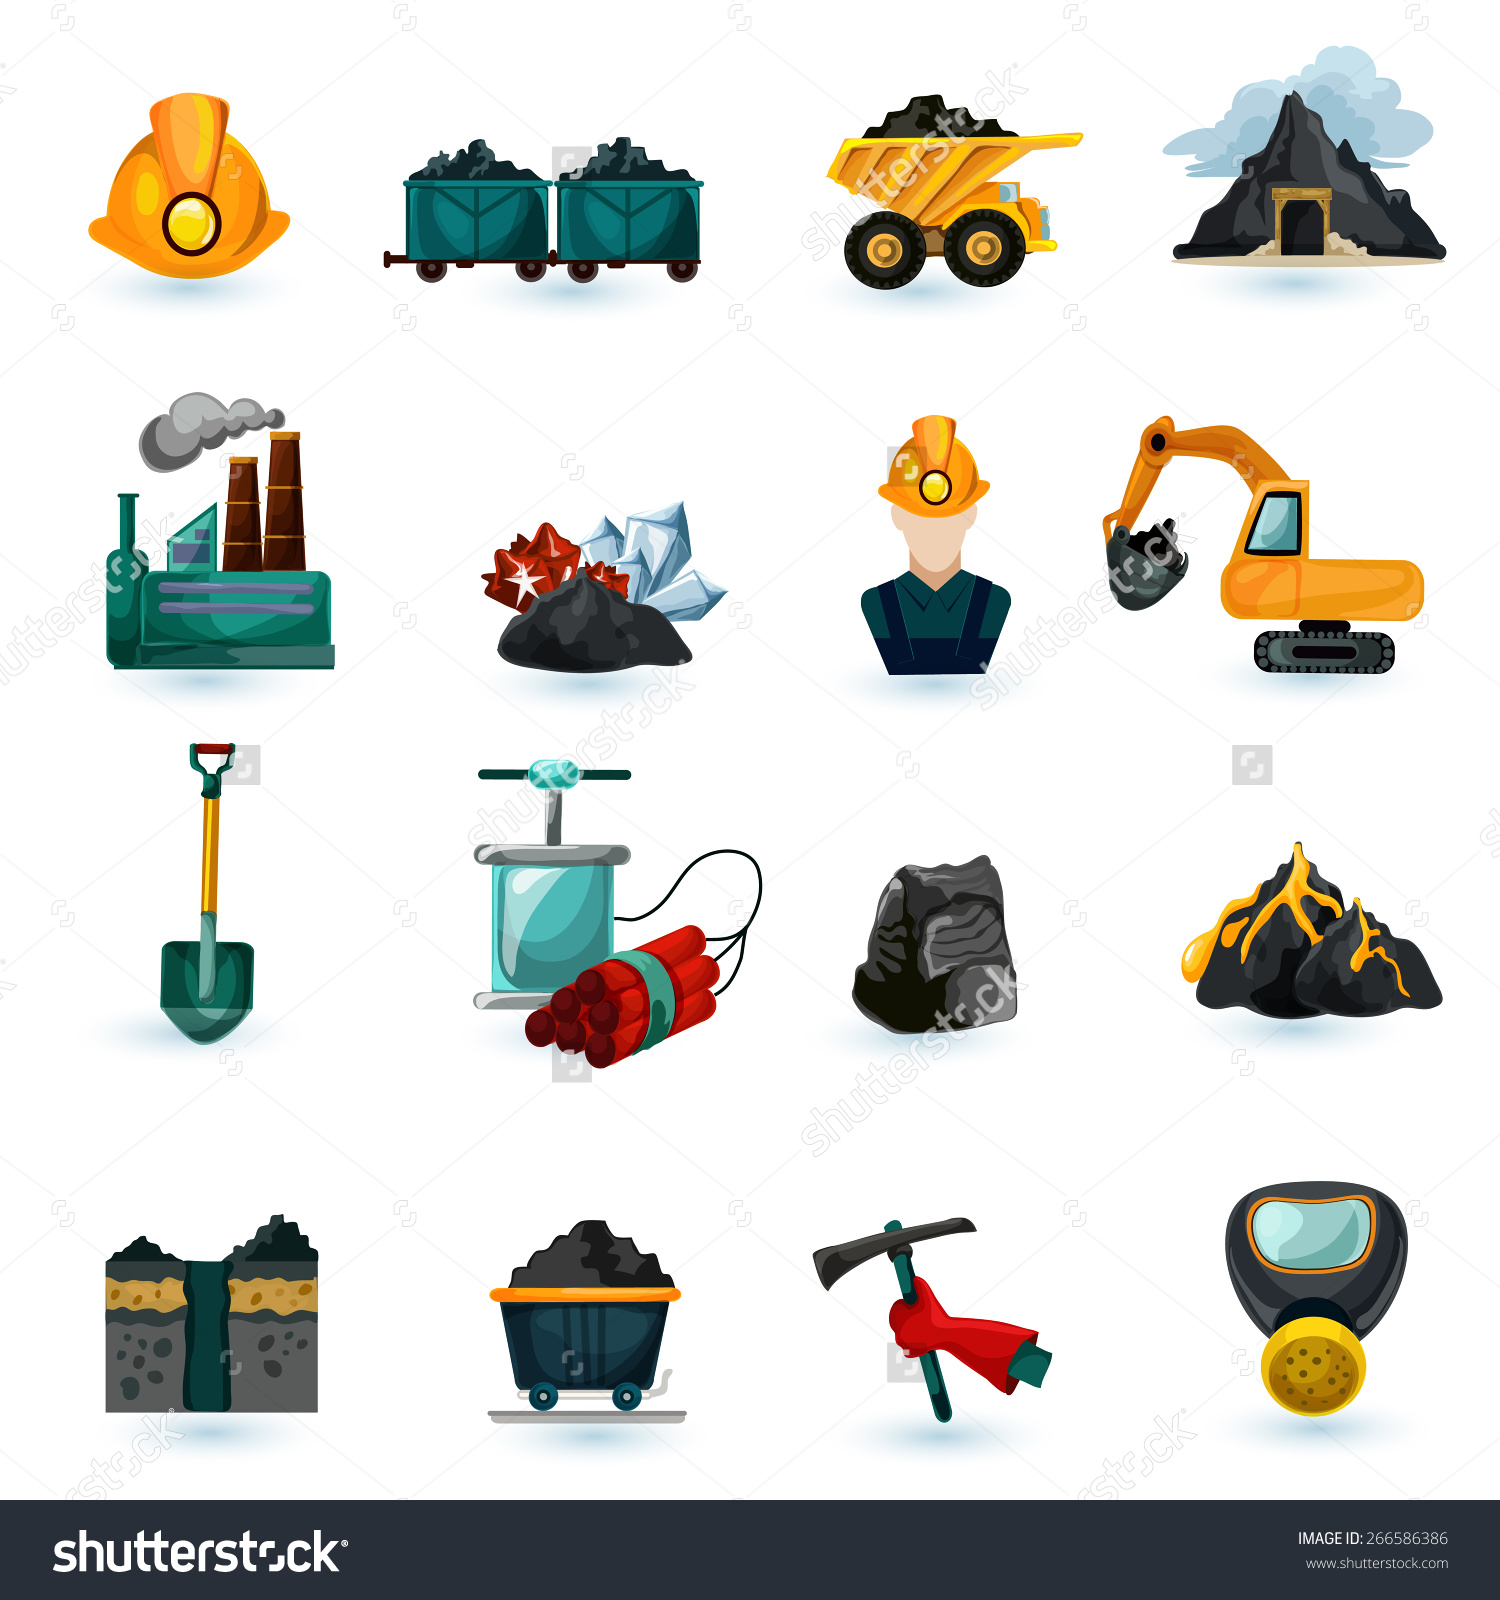 Mining and resource extraction clipart.